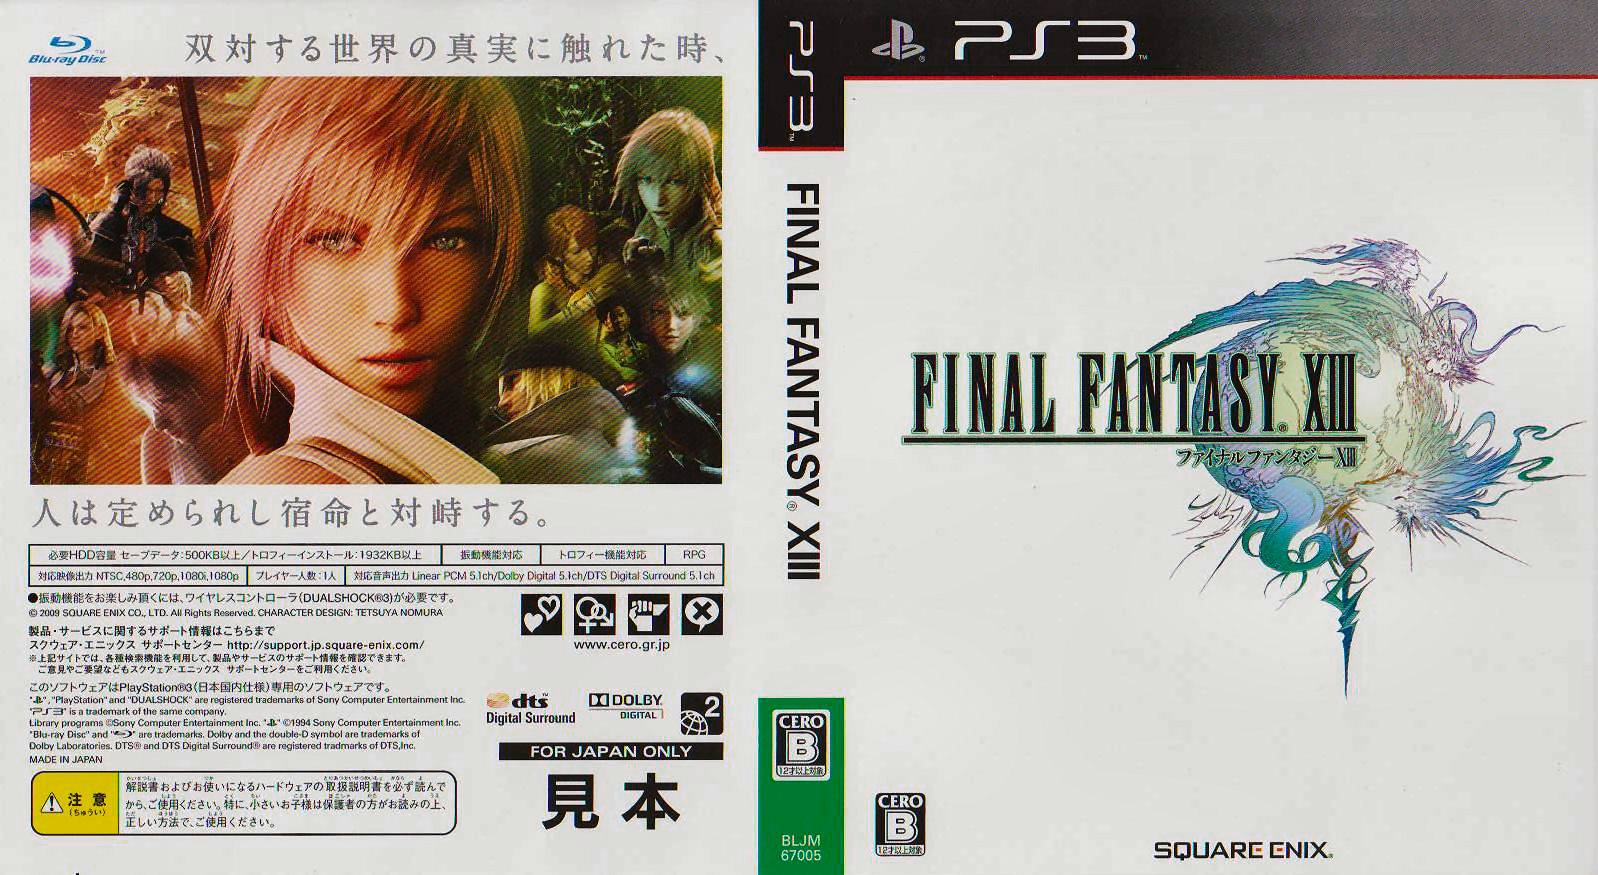 Final Fantasy XIII Jaquette Cover Bundle (1)